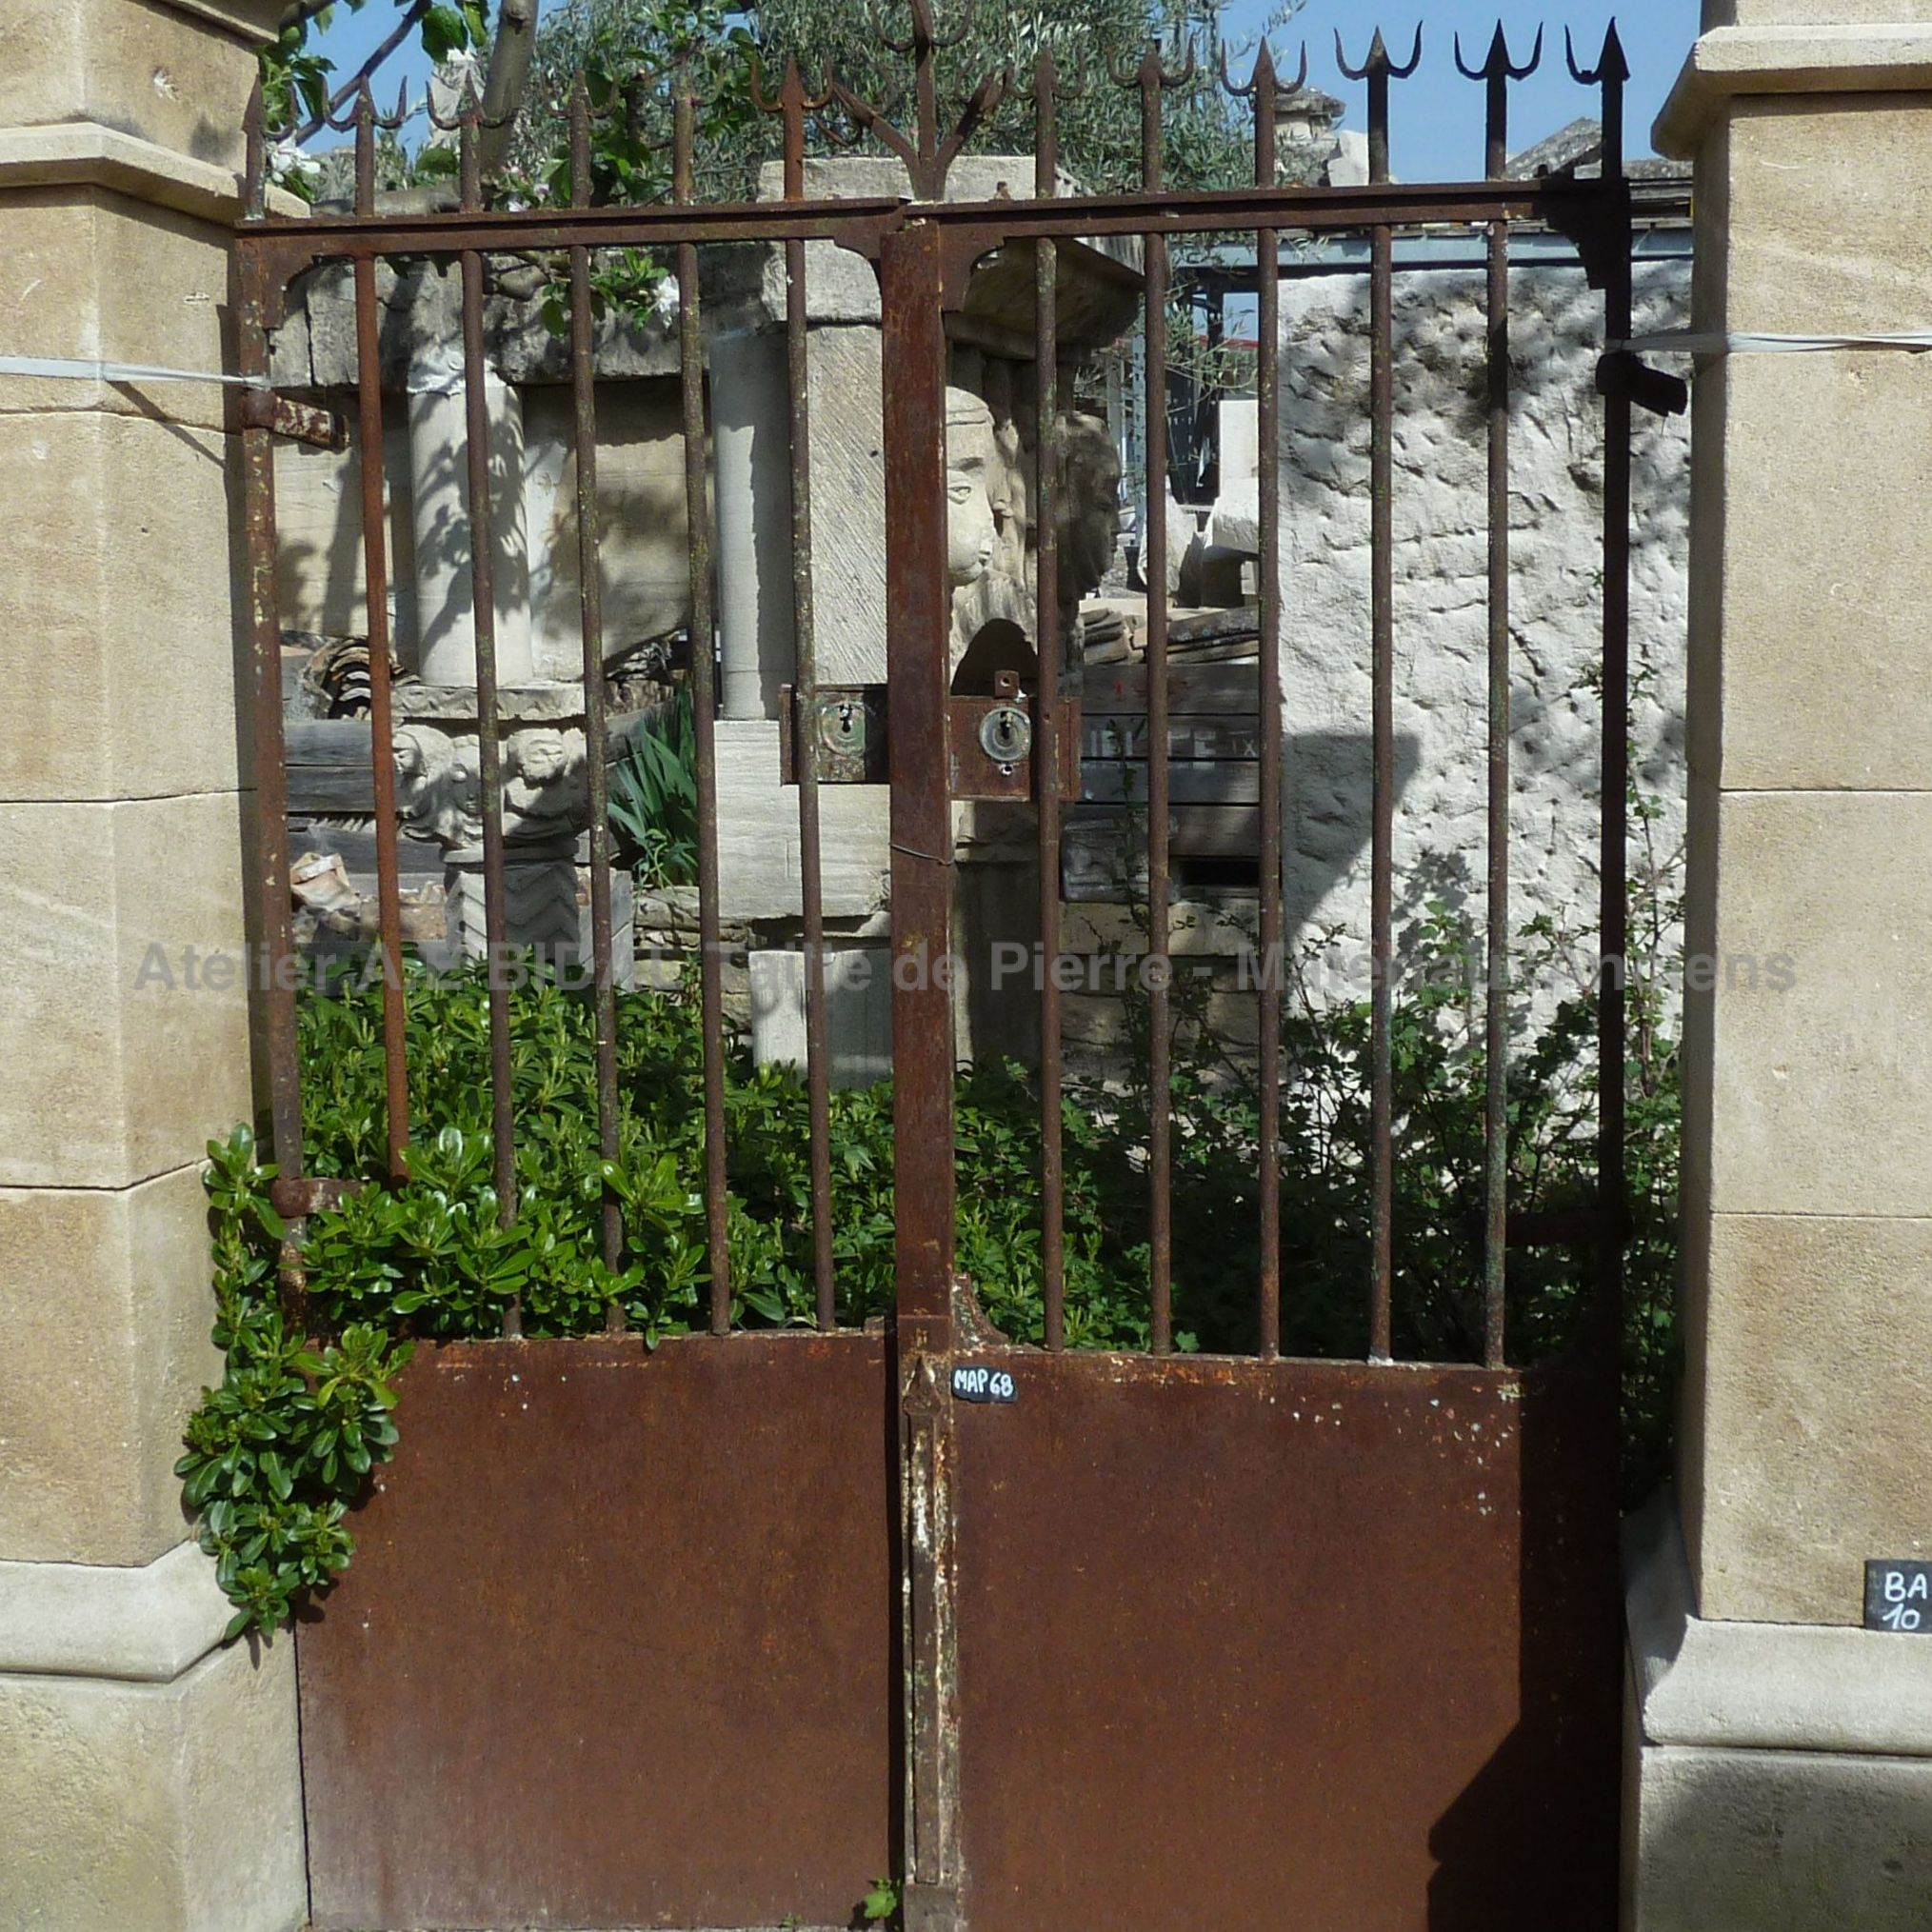 Small old wrought iron gate with 2 gates - pedestrian gate made of iron .